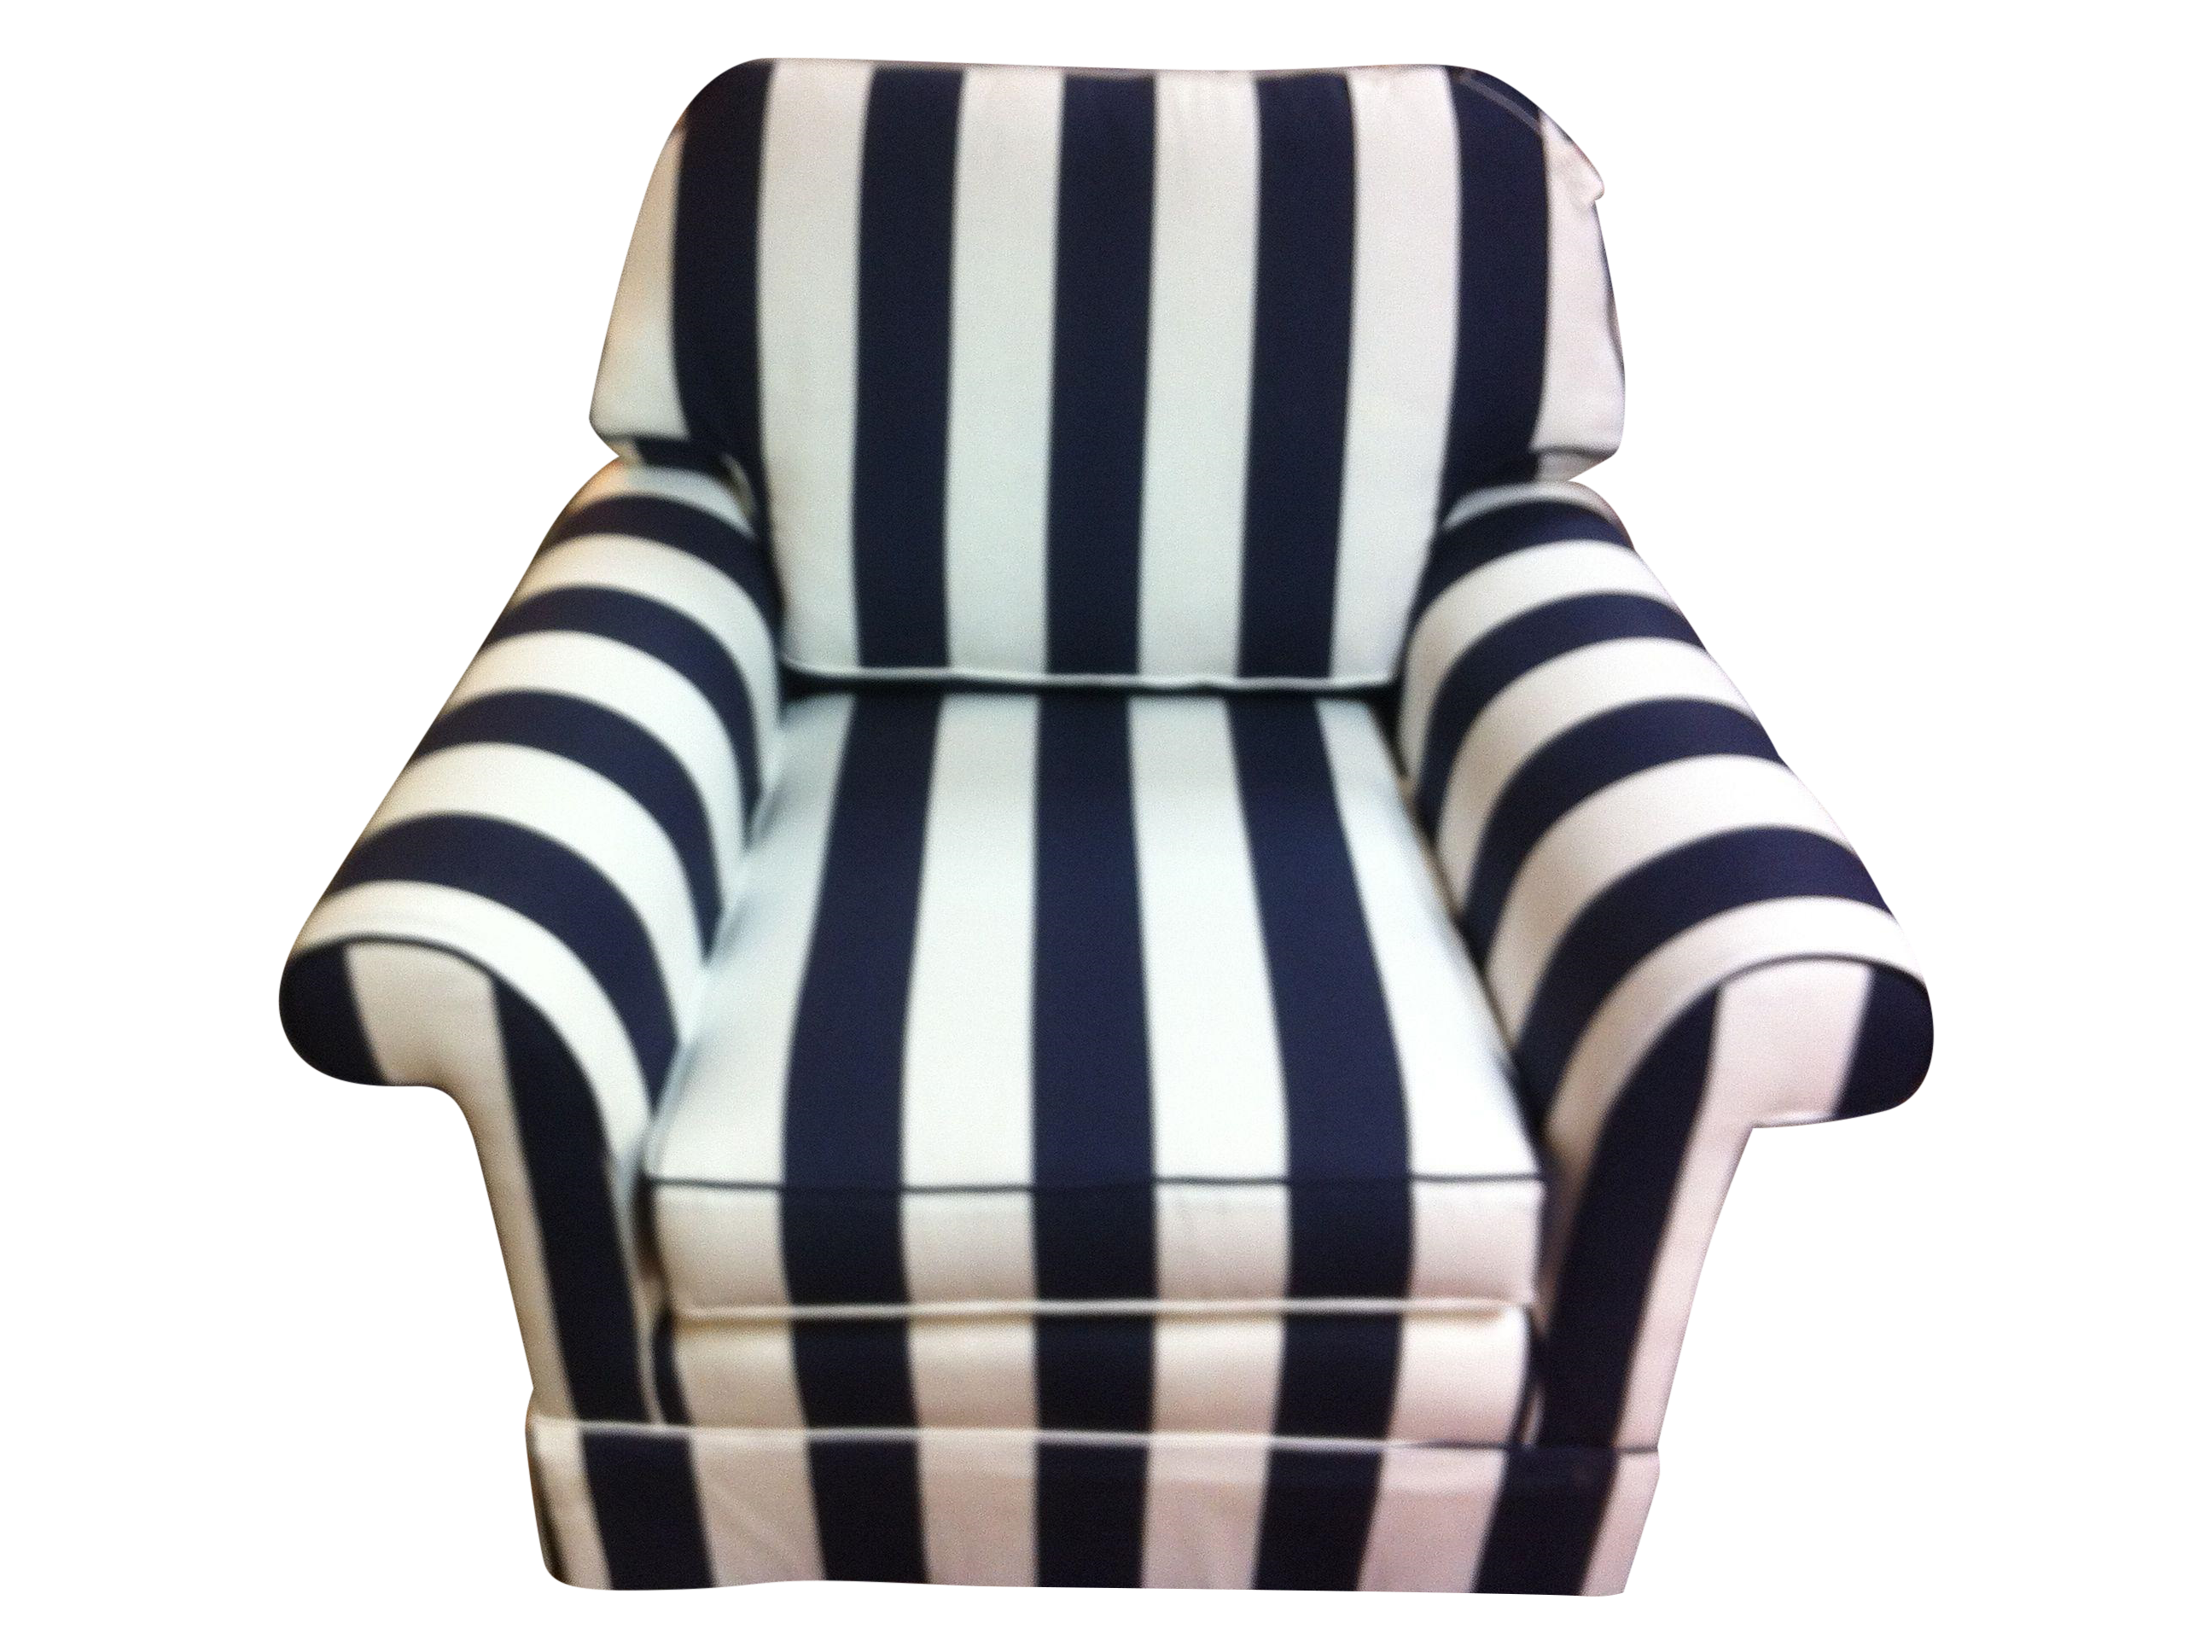 Navy blue and white striped chair chairish